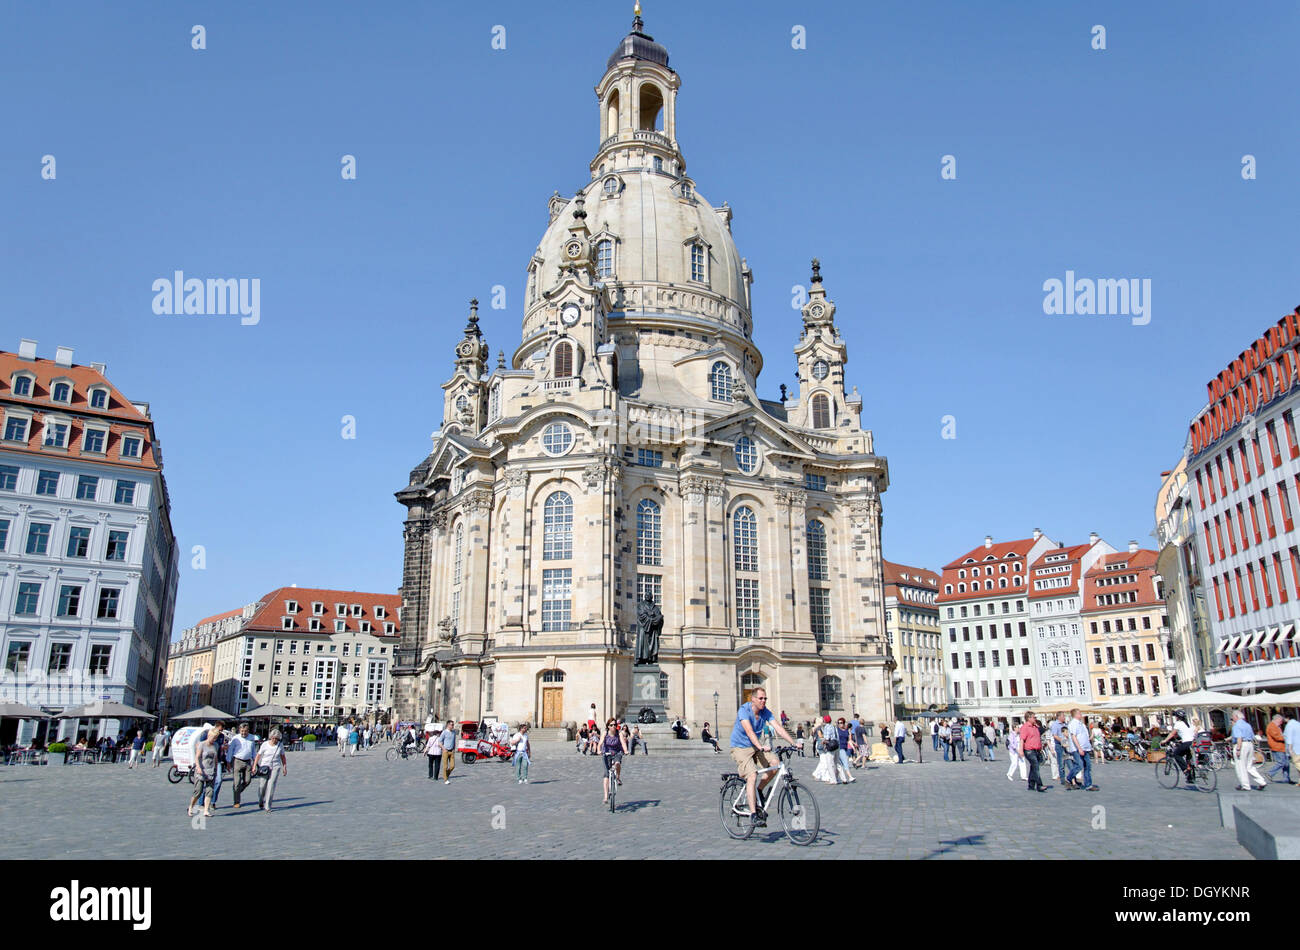 Bebe Dresden Frauenkirche Church Of Our Lady Dresden Florence Of The Elbe